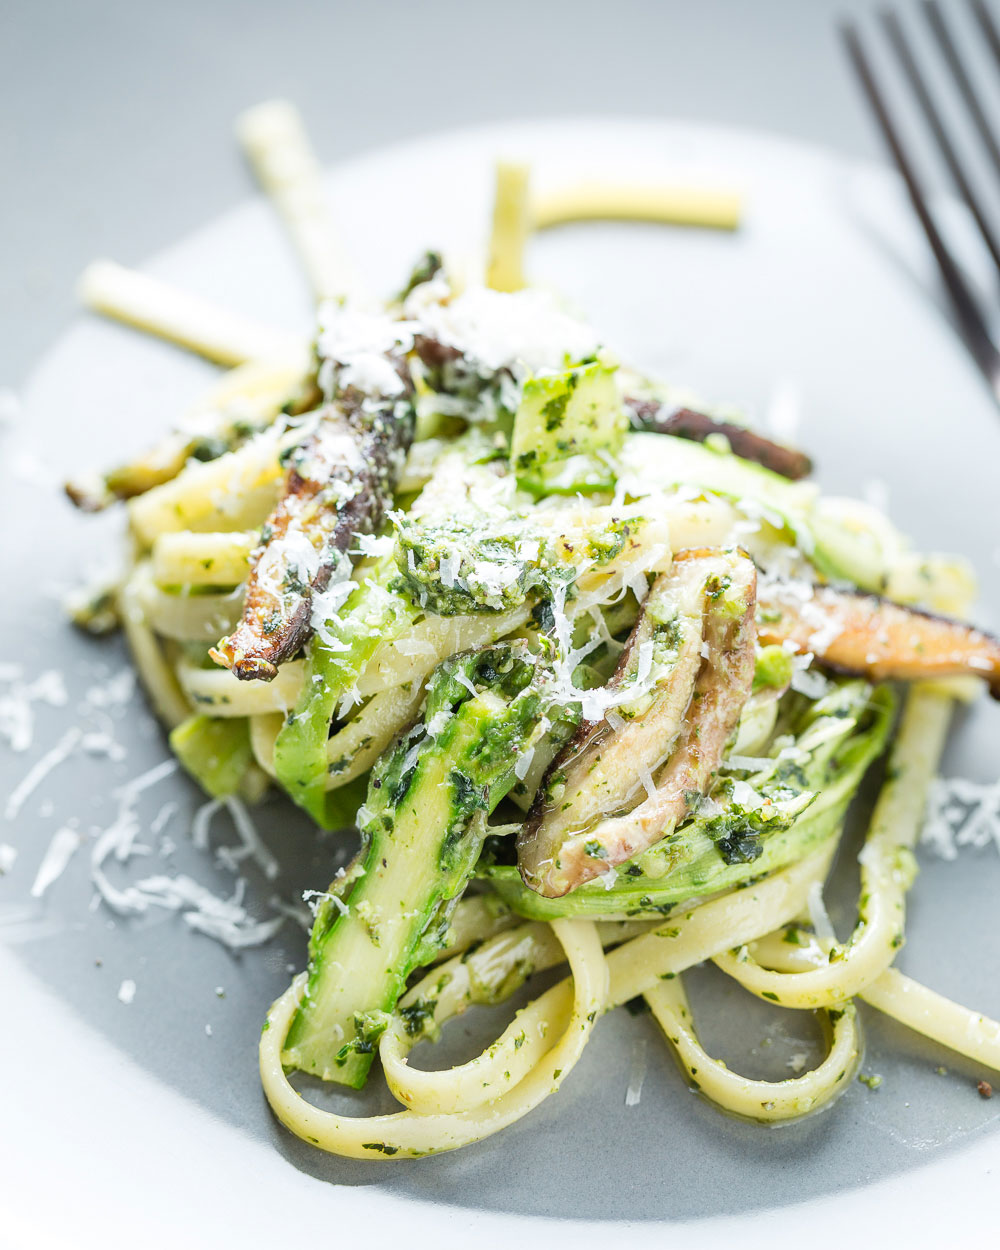 Pesto Pasta with Asparagus Ribbons and Shiitake Mushrooms Closeup